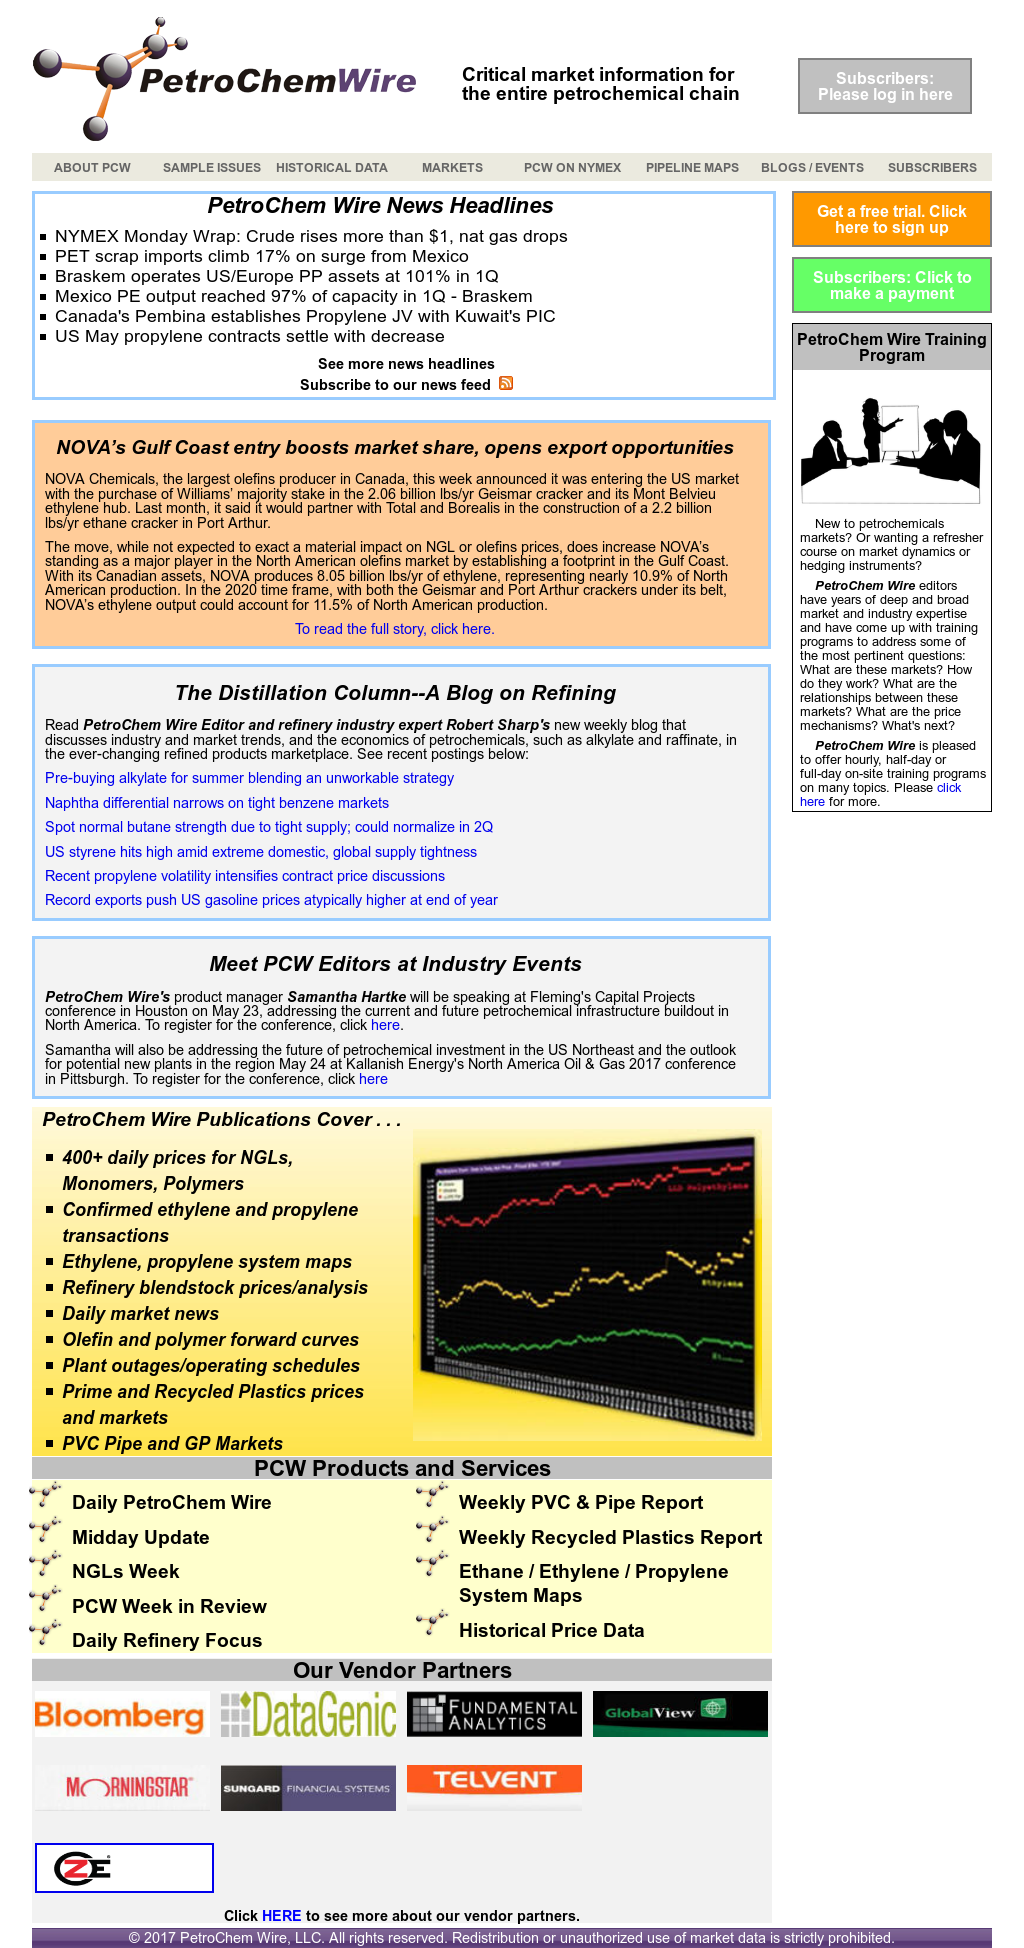 PetroChem Wire Competitors, Revenue and Employees - Owler Company ...